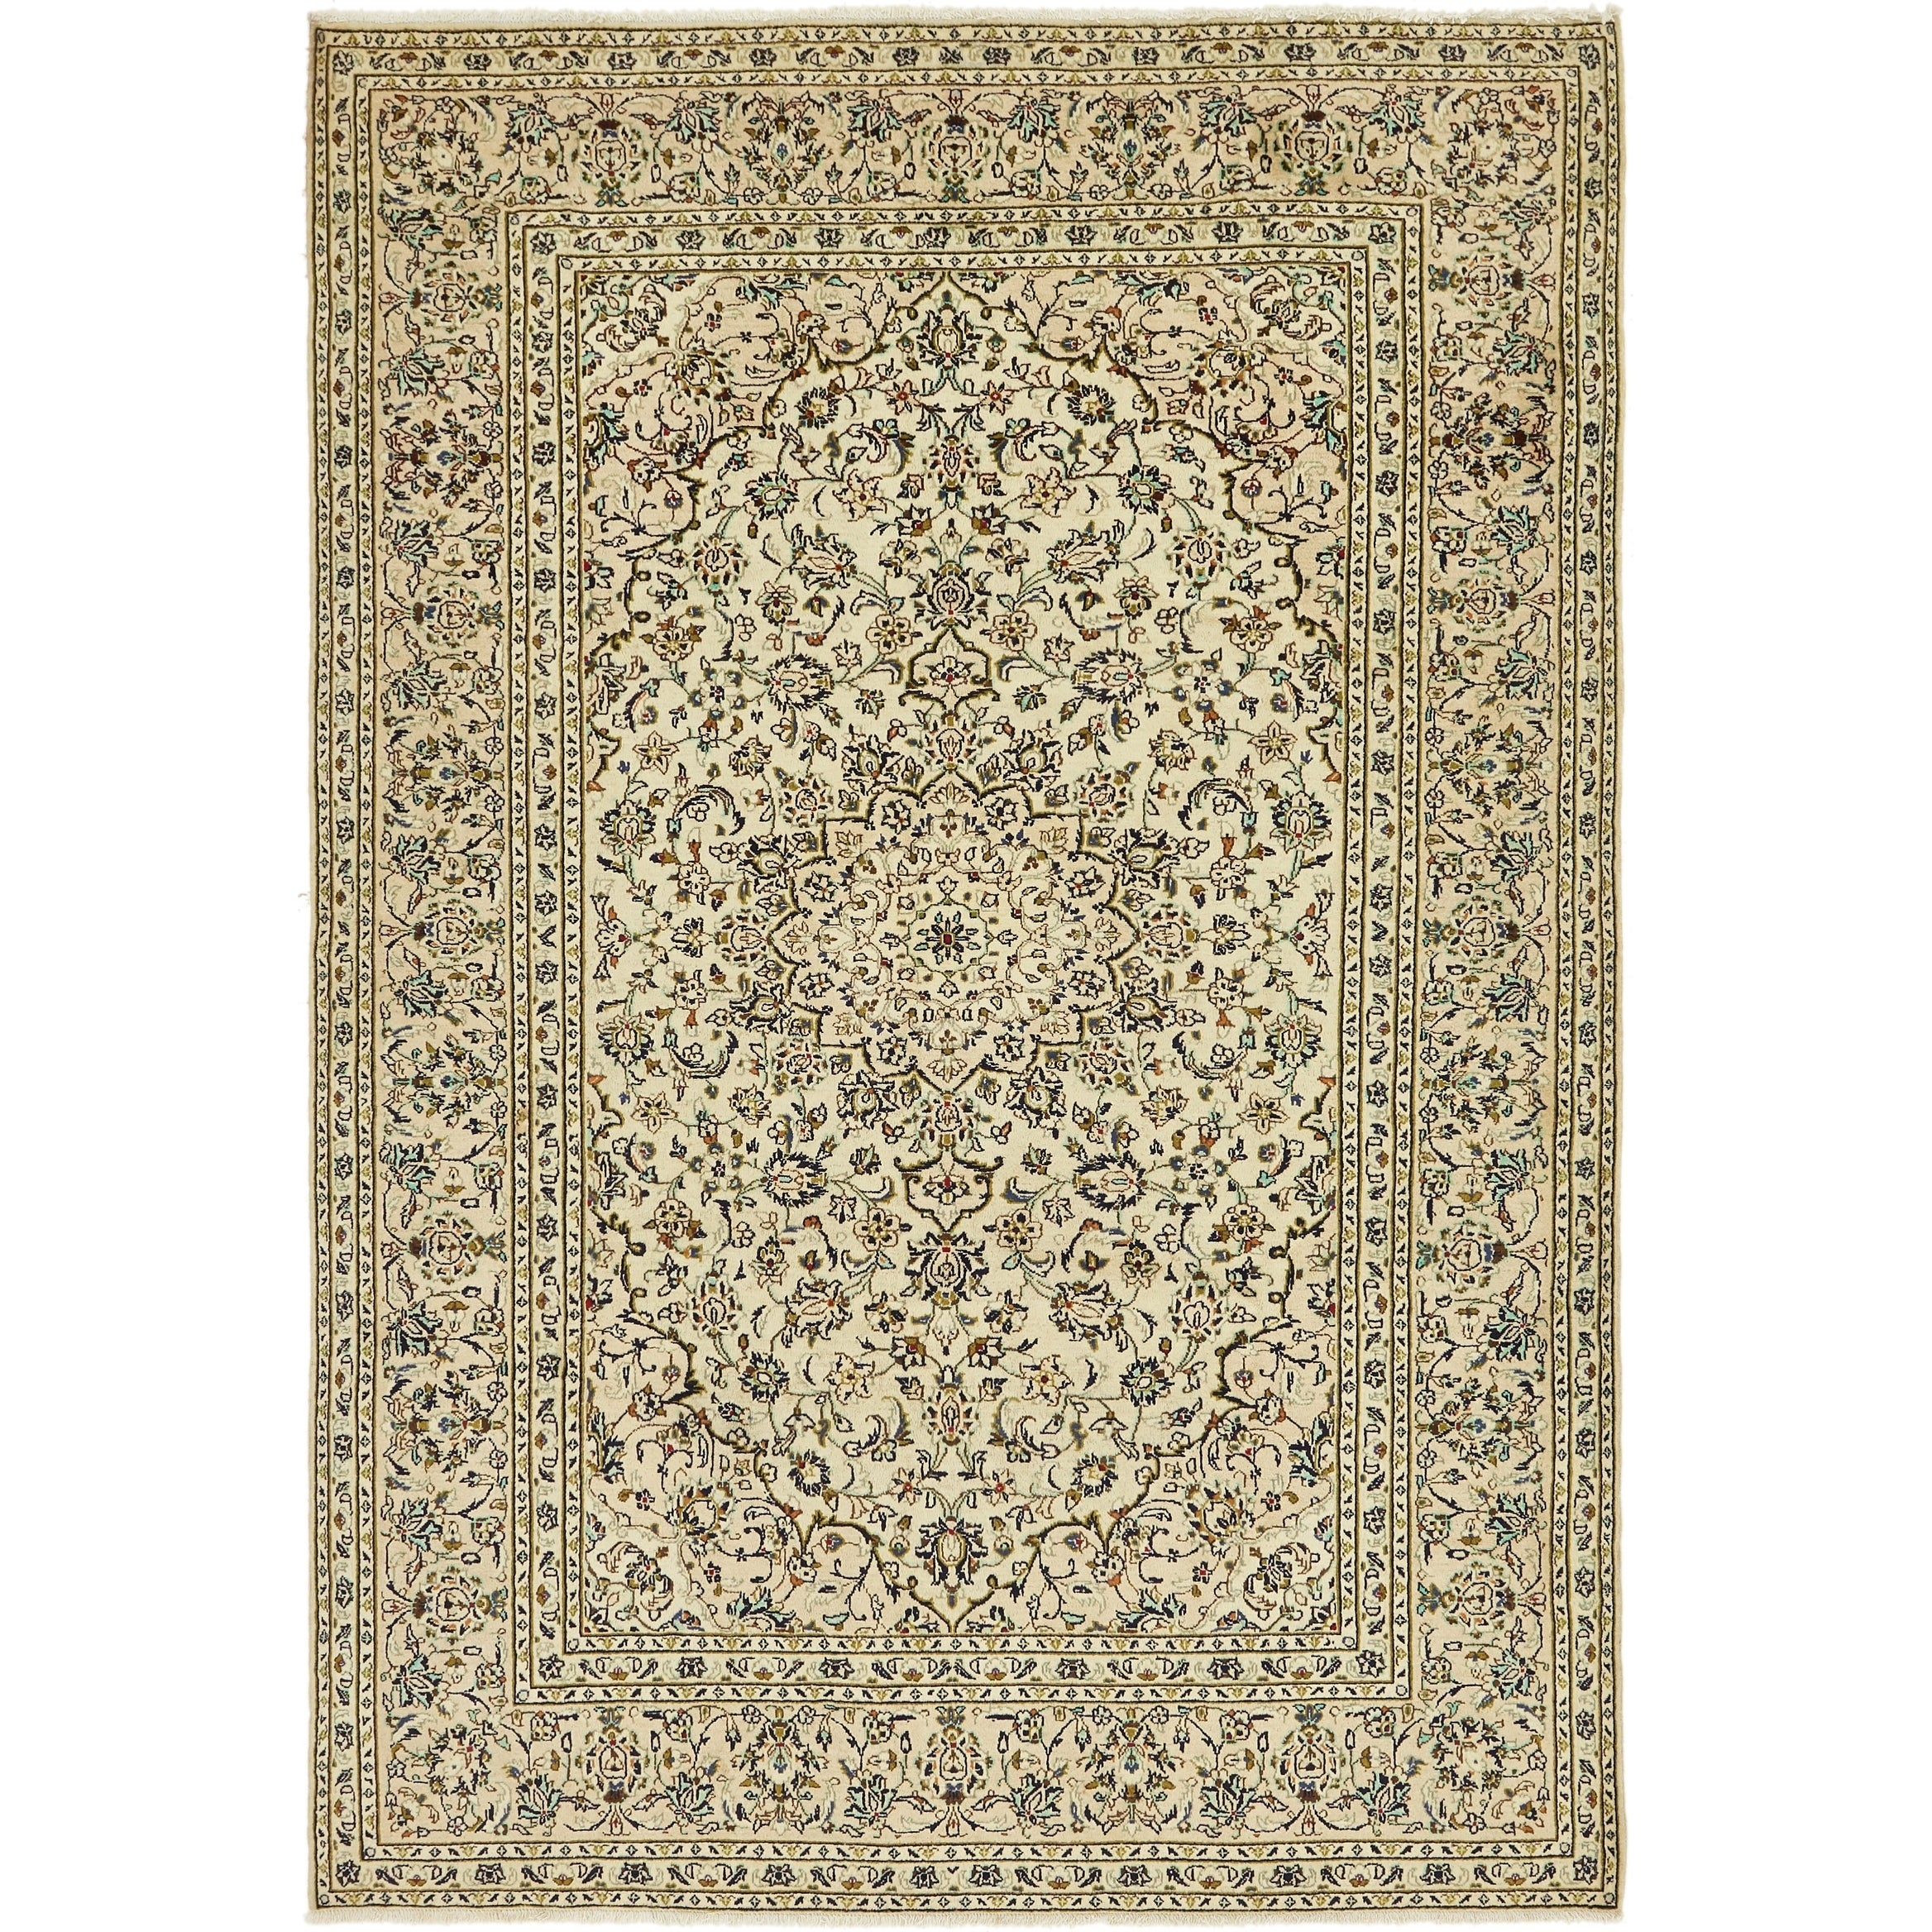 Hand Knotted Kashan Semi Antique Wool Area Rug - 6 7 x 9 7 (Ivory - 6 7 x 9 7)